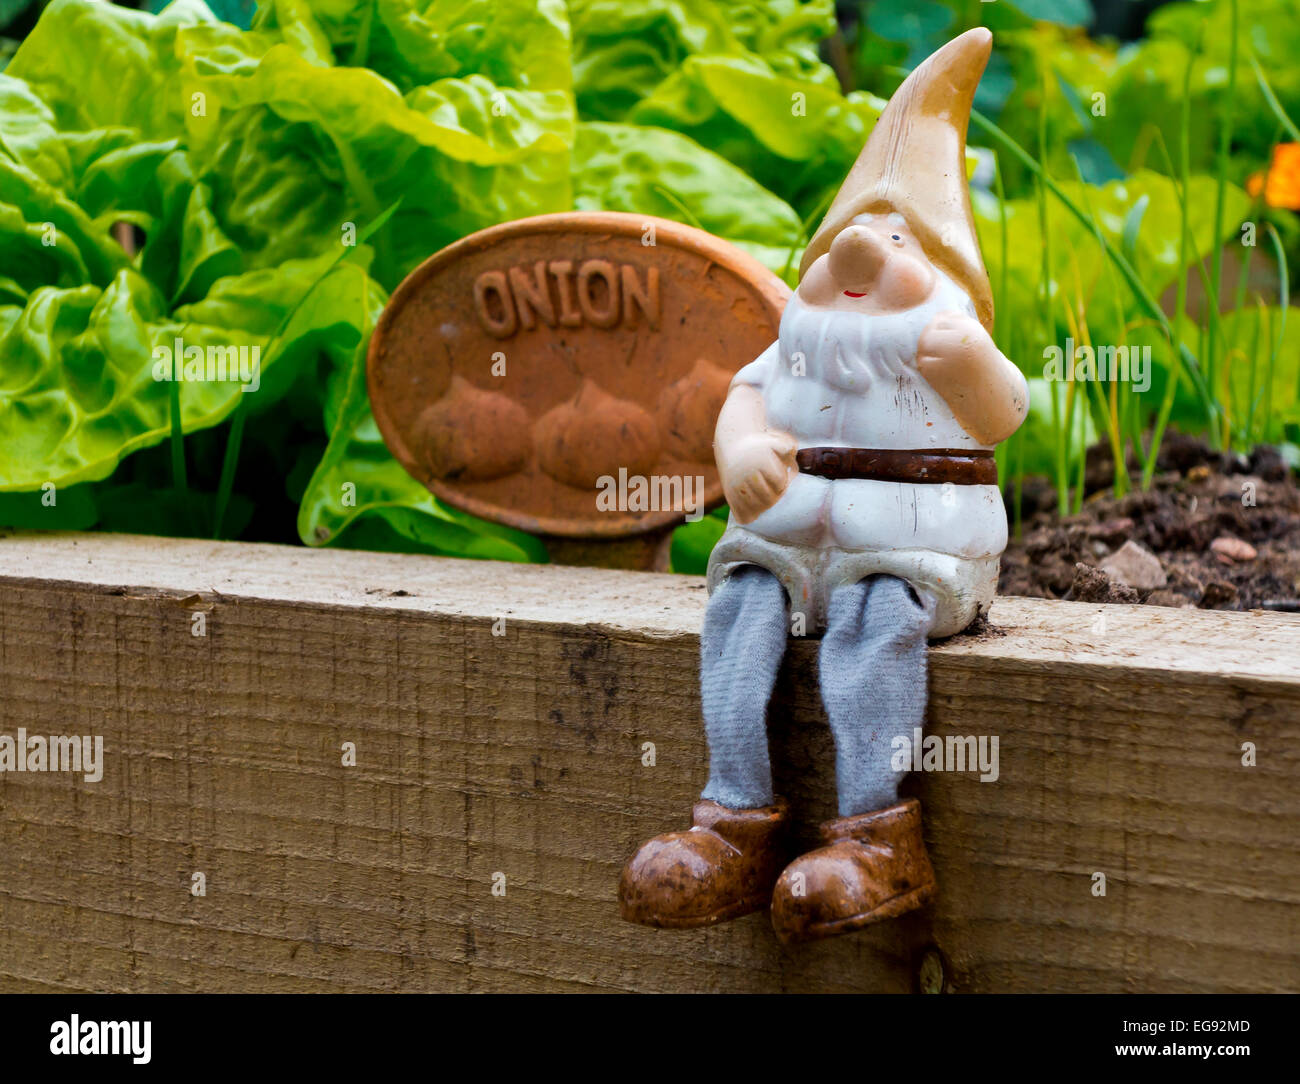 Garden Gnome Sitting On Wooden Plank With Raised Vegetable Beds Containing  Lettuce And Onions Growing Behind